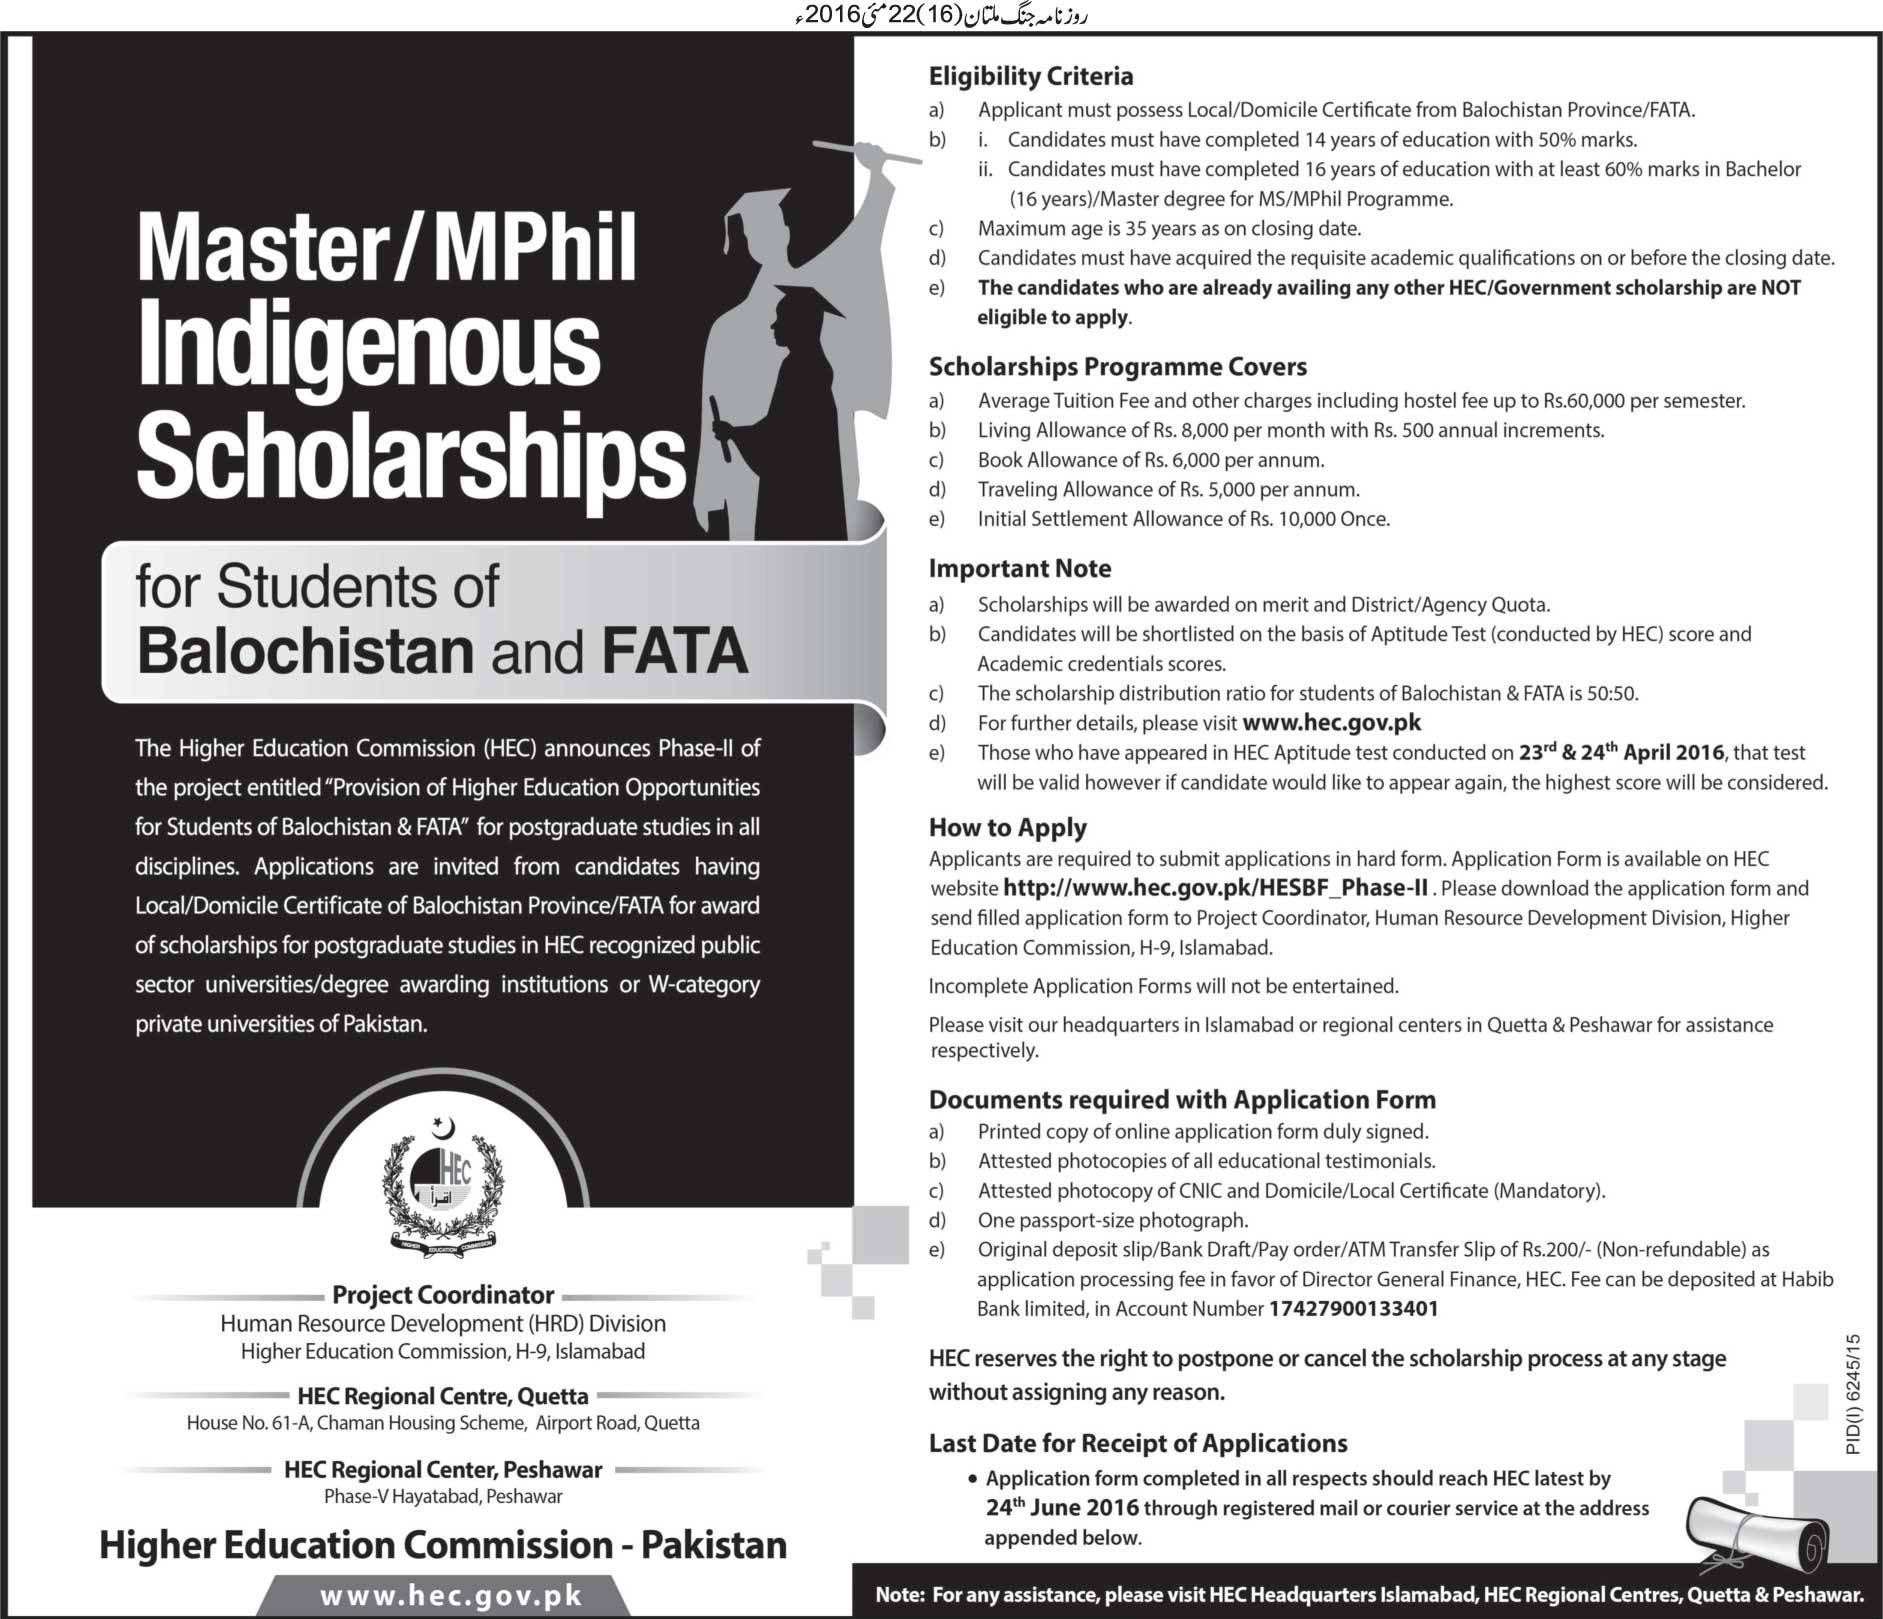 Hec Mastermphil Indigenous Scholarships For Balochistan And Fata